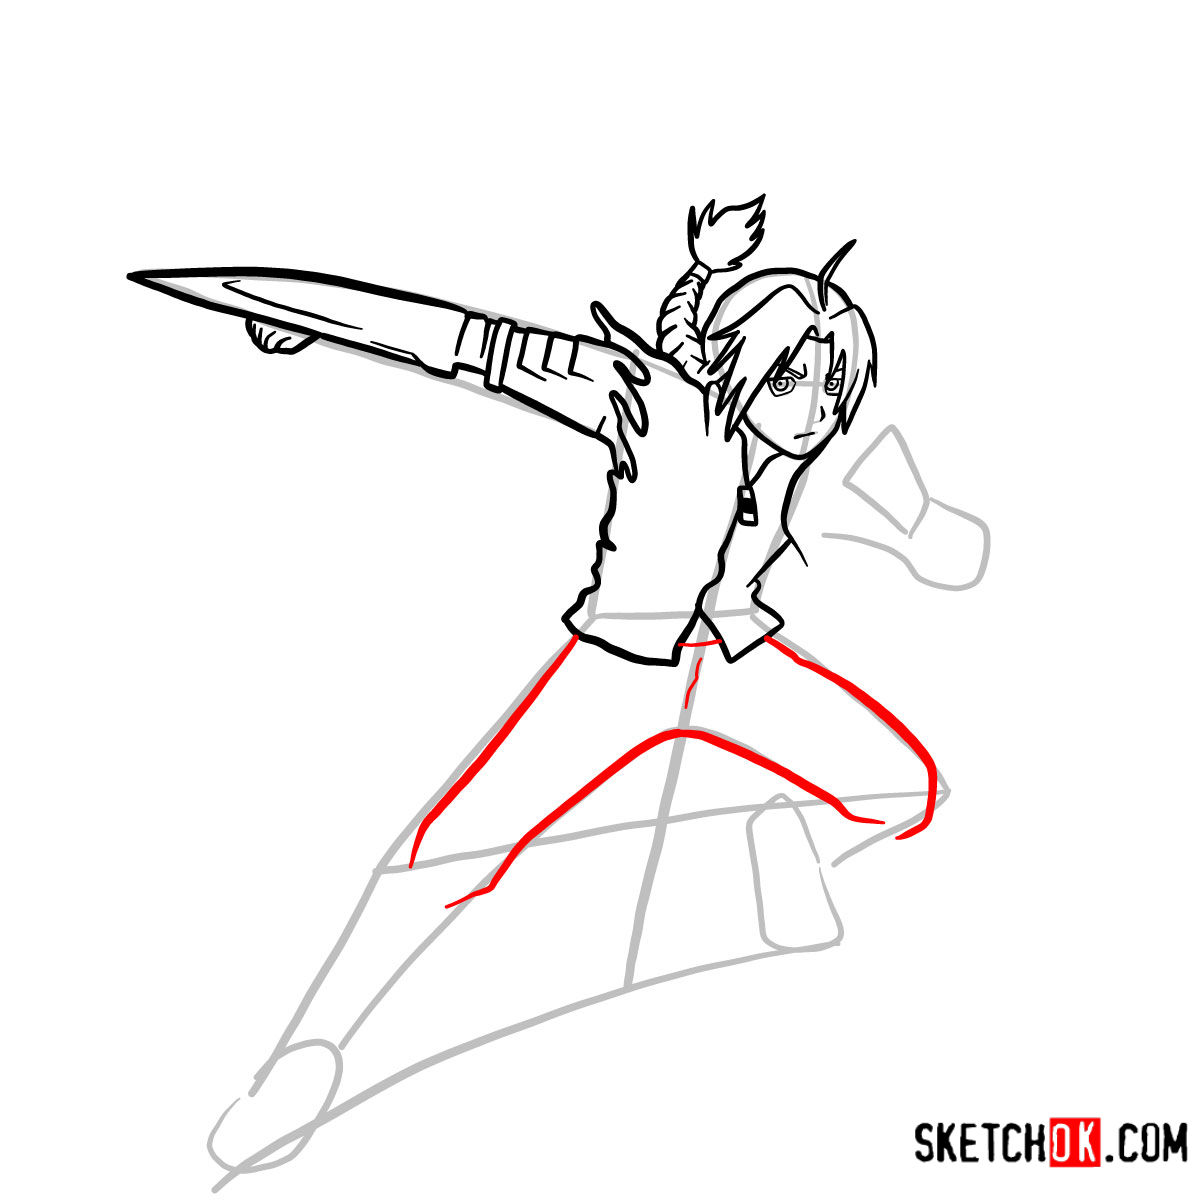 How to draw Edward Elric in a fight | Fullmetal Alchemist - step 09